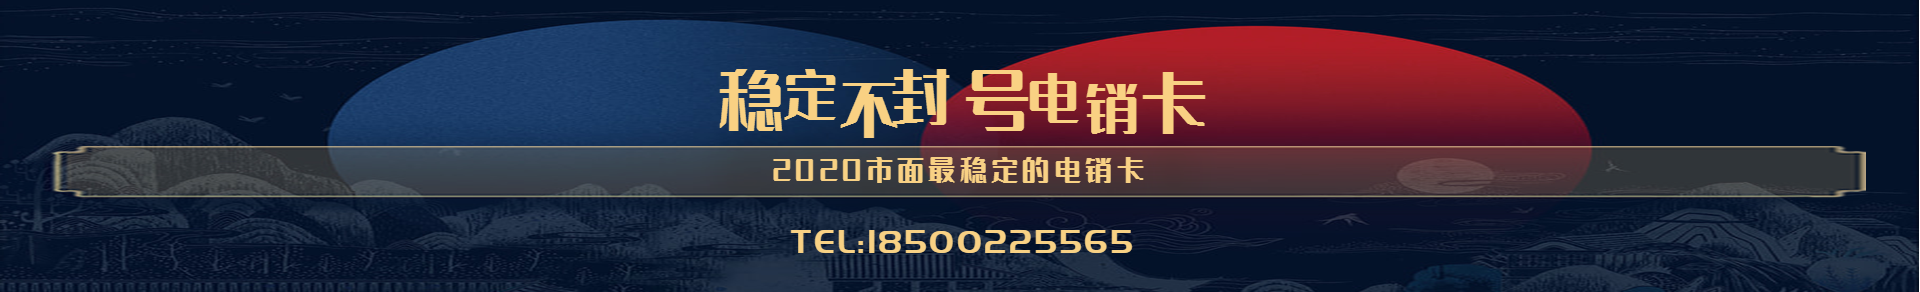 http://www.dxkgw.cn/data/upload/201912/20191230104002_251.png